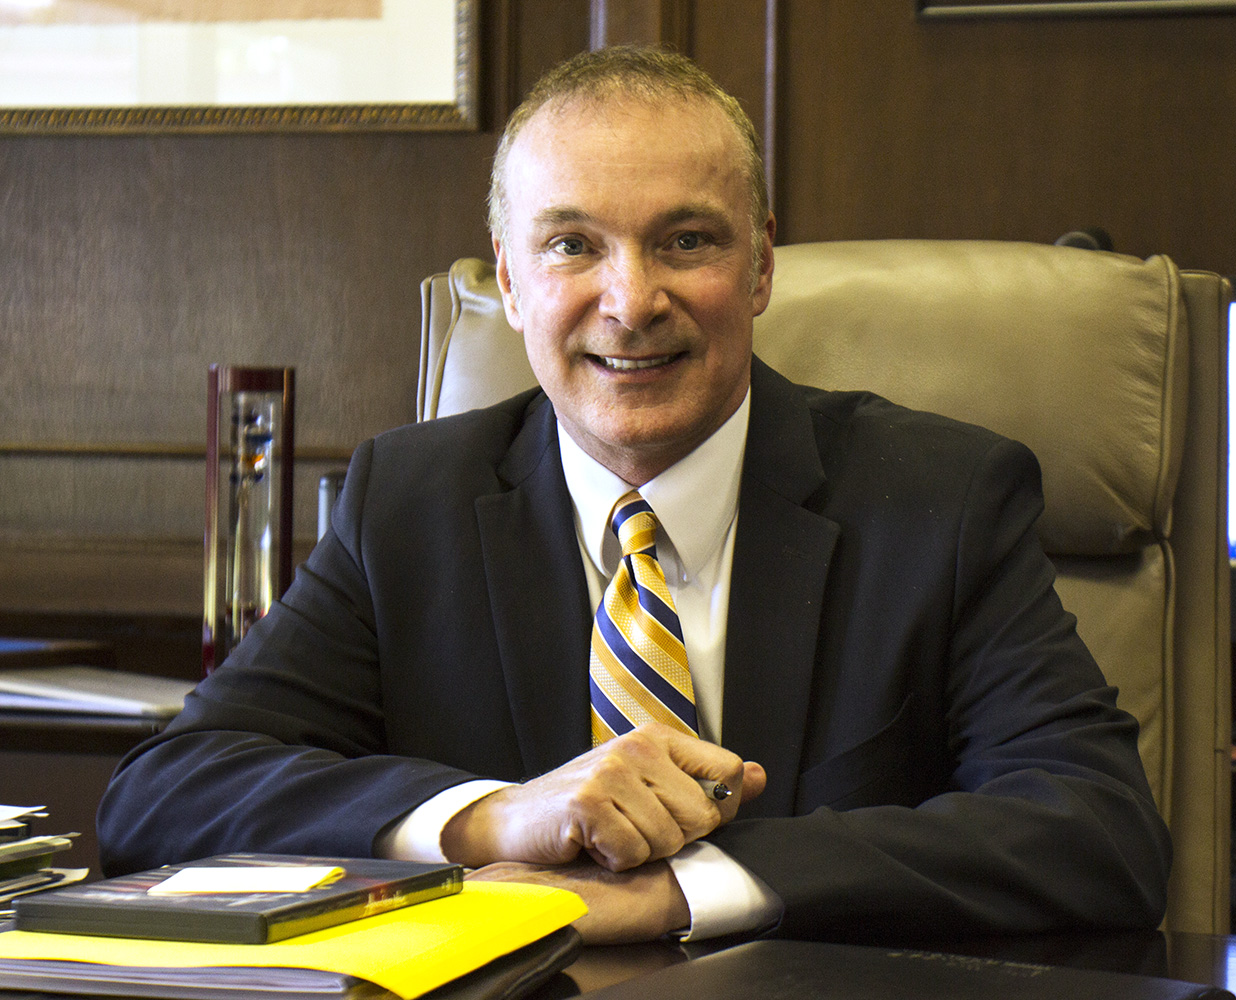 OCCC president announces plans to retire in July 2015